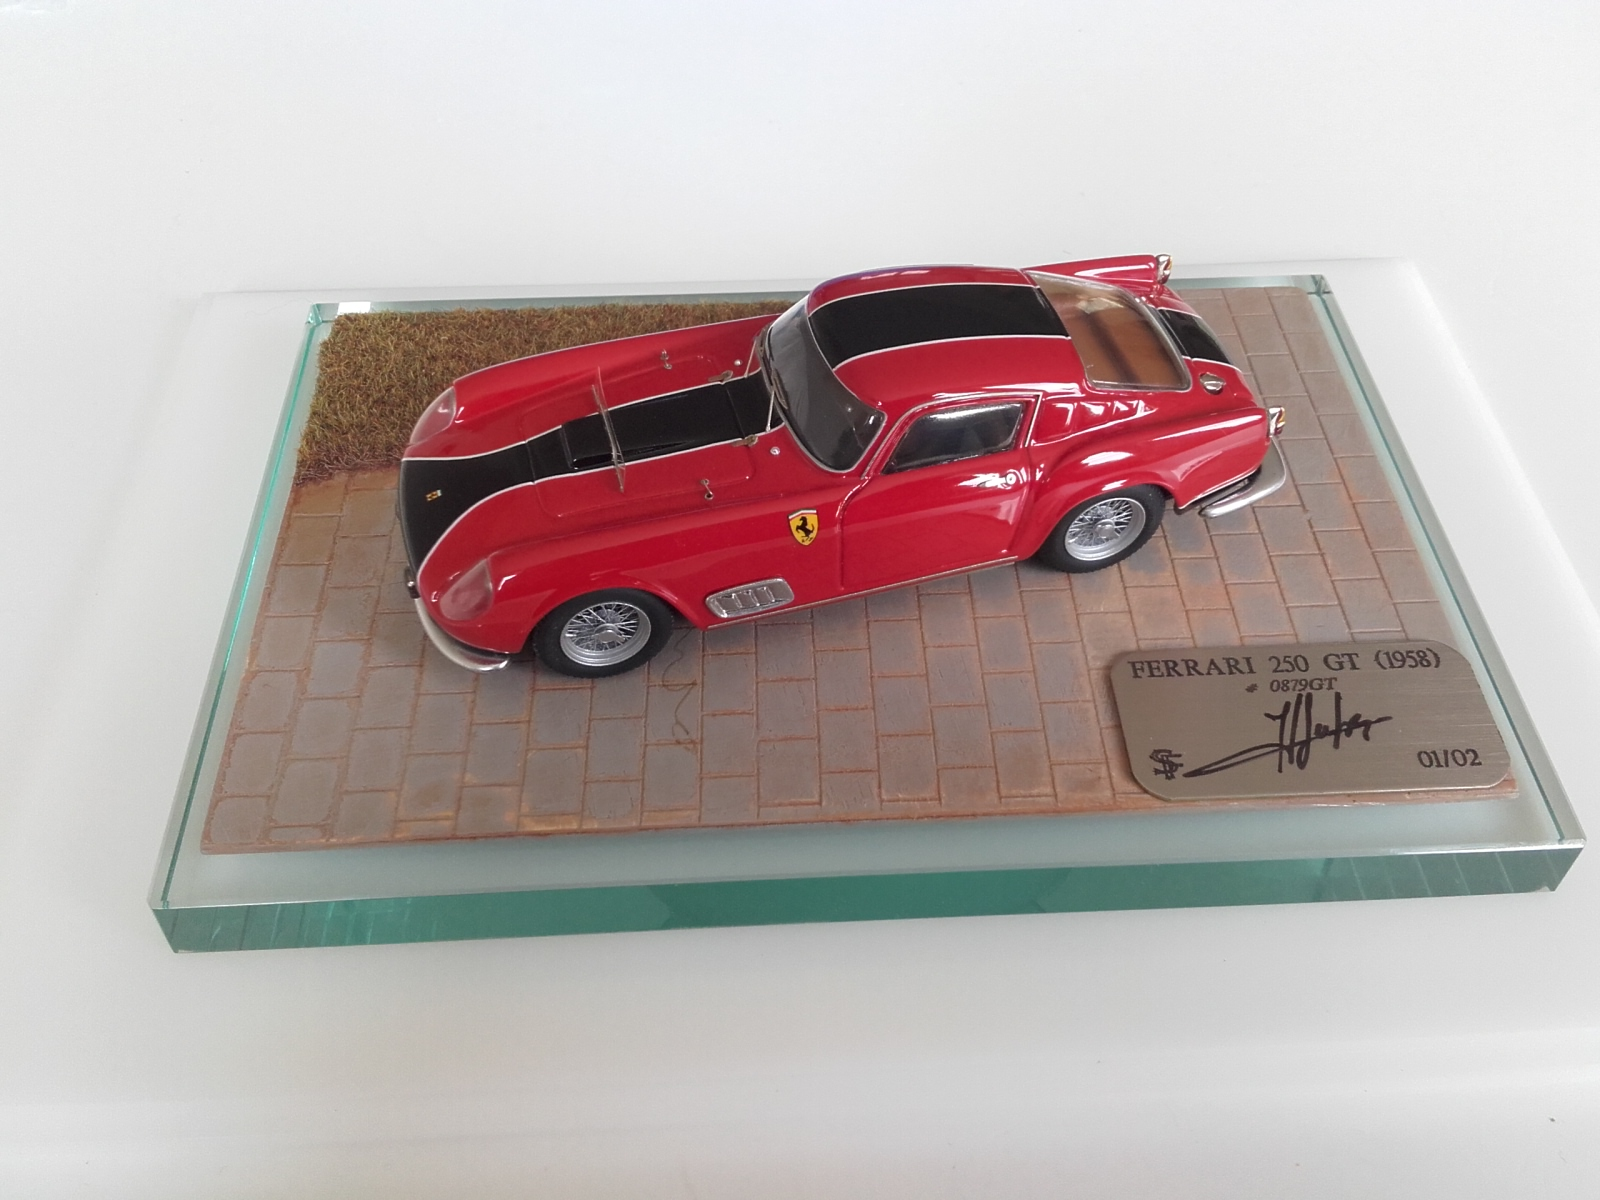 F. Suber : Ferrari 250 GT 1958 chassis 0879GT